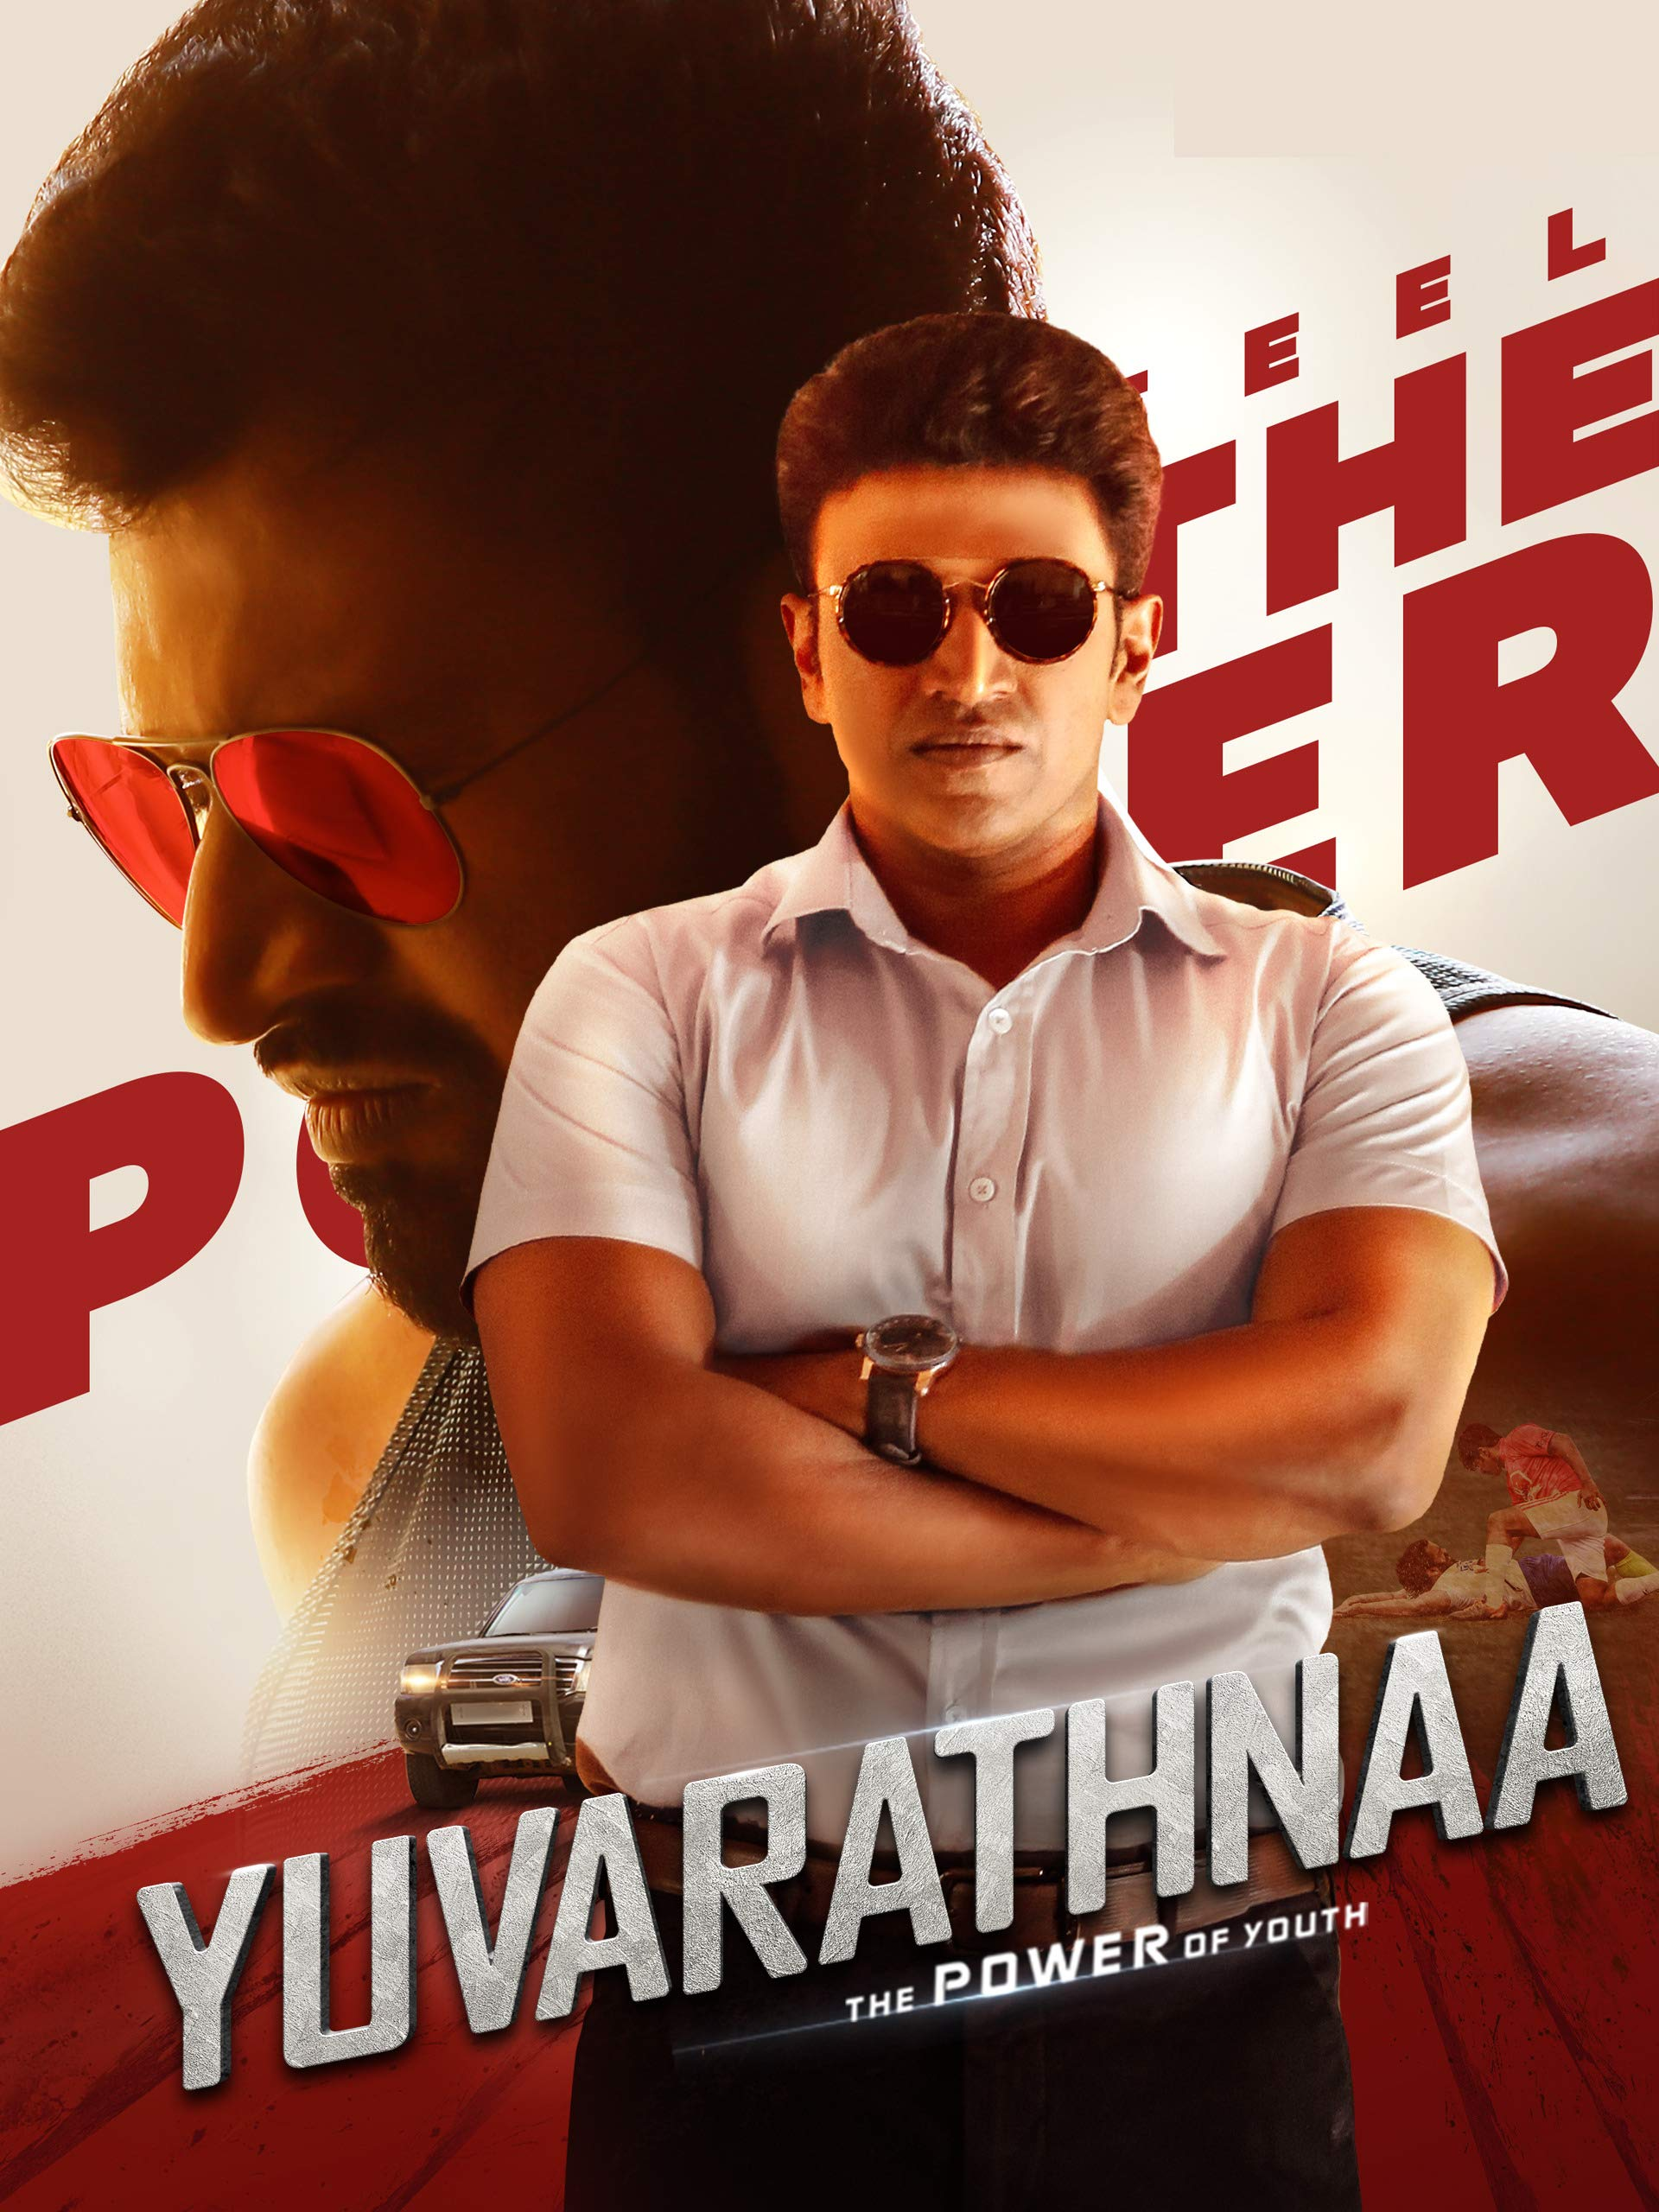 Yuvarathnaa 2021 Hindi Dubbed 1080p HDRip ESub 2.8GB